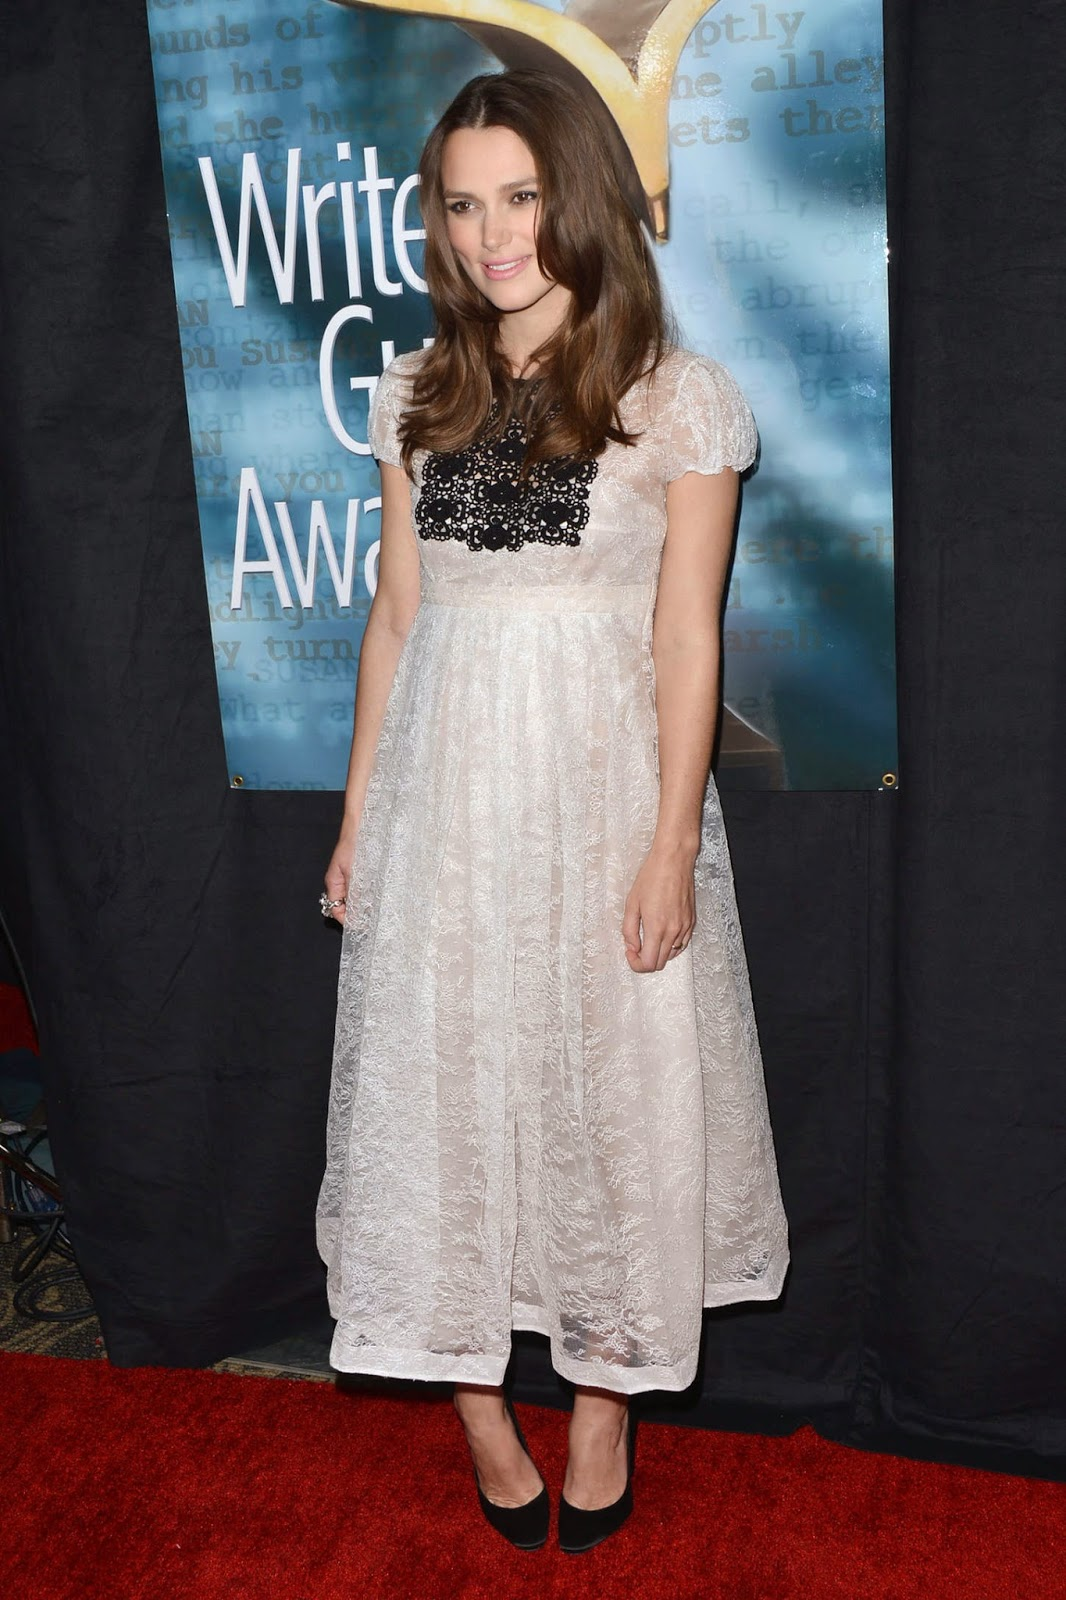 Pregnant Keira Knightley glows in a white lace dress at the 2015 Writers Guild Awards in LA